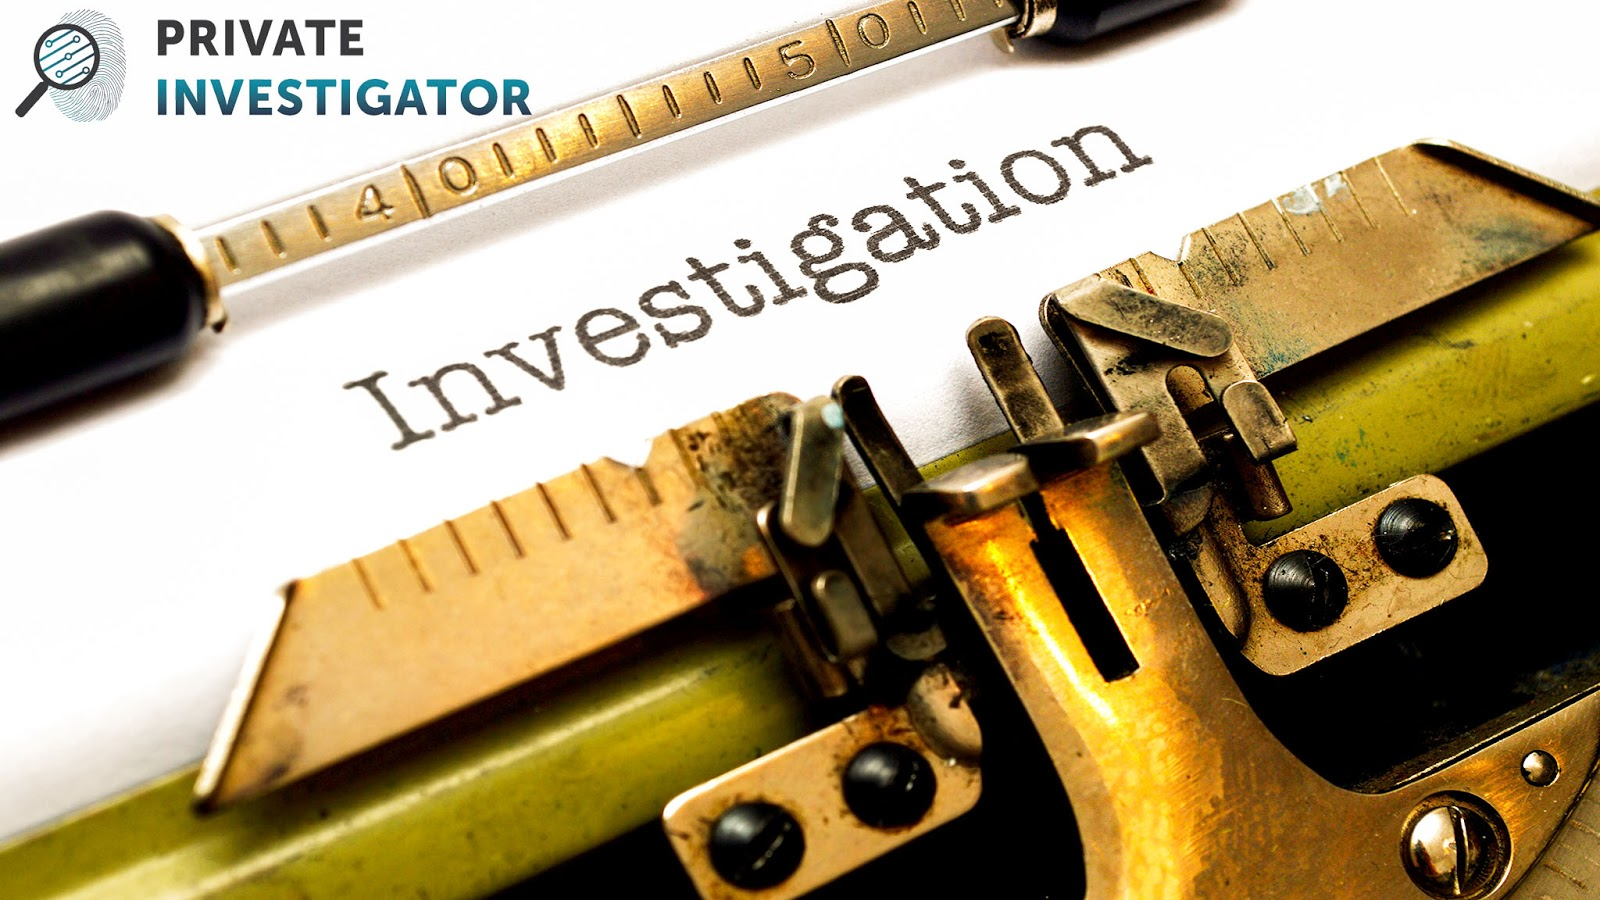 Trust Your Spouse's Words or Hire a Private Detective Agency - The Choice Is Yours